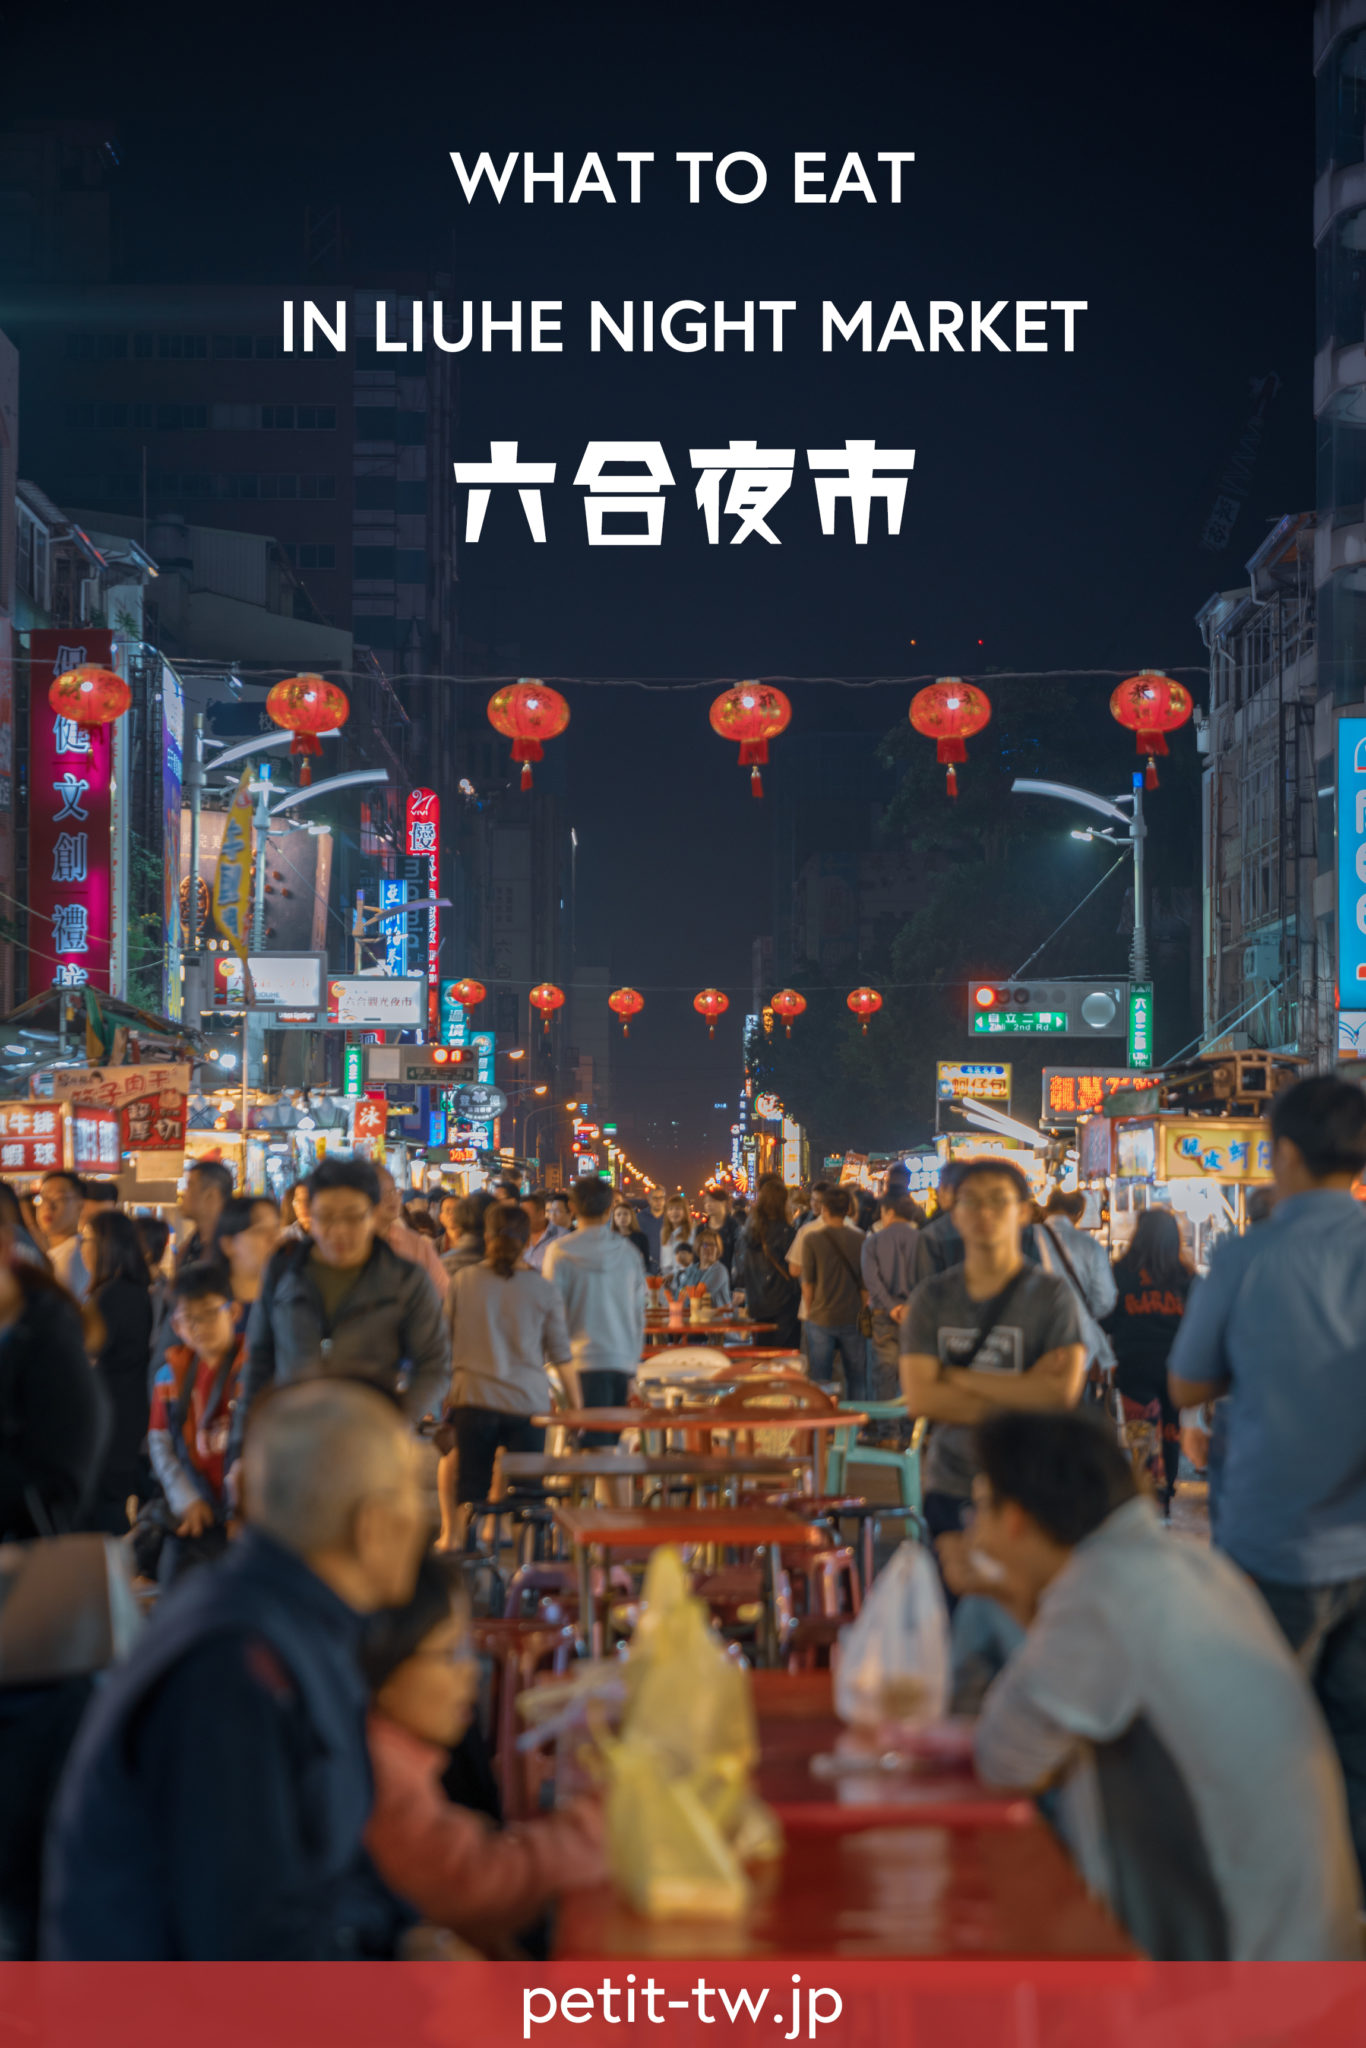 WHAT TO EAT IN LIUHE NIGHT MARKET 六合夜市,高雄,台湾 高雄の六合夜市 屋台グルメを食べ歩き!